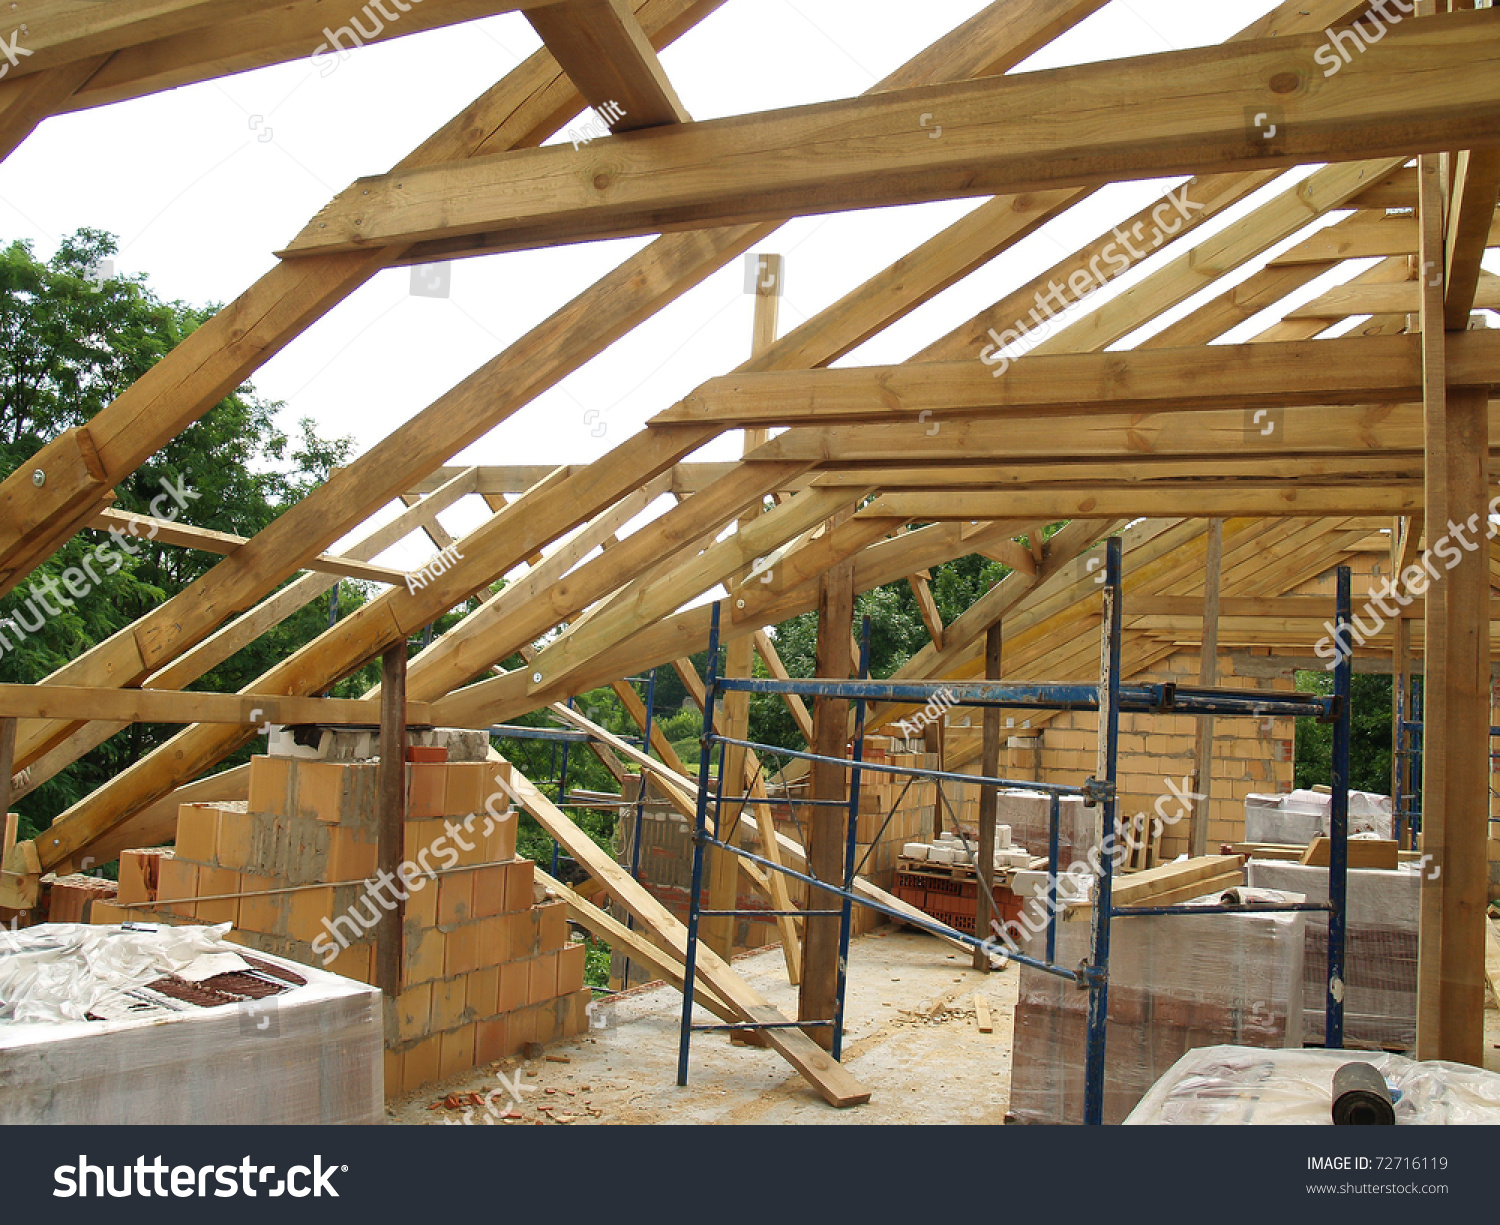 Roof truss install stock photo 72716119 shutterstock for Roof trusses installation